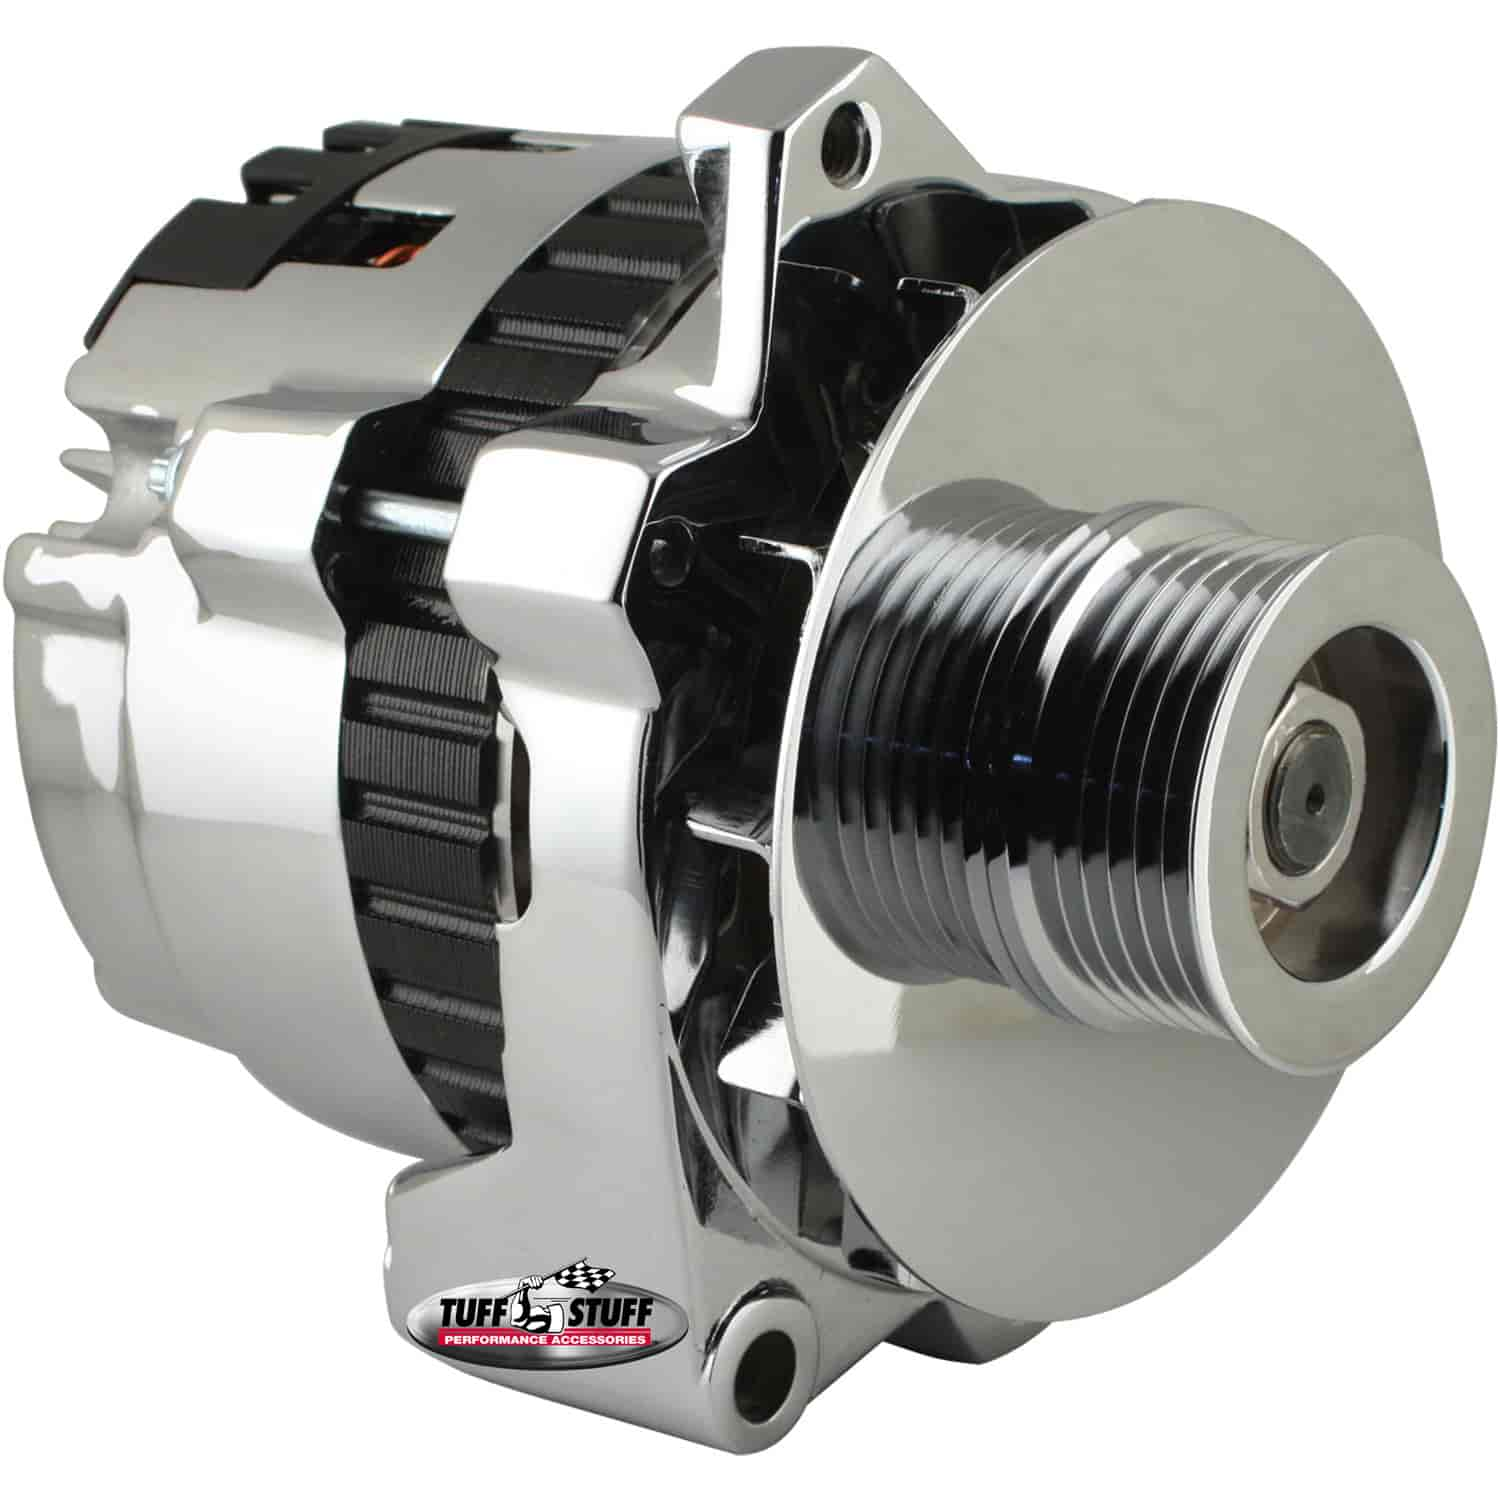 Tuff Stuff 7861A6G - Tuff Stuff Chrome Alternators